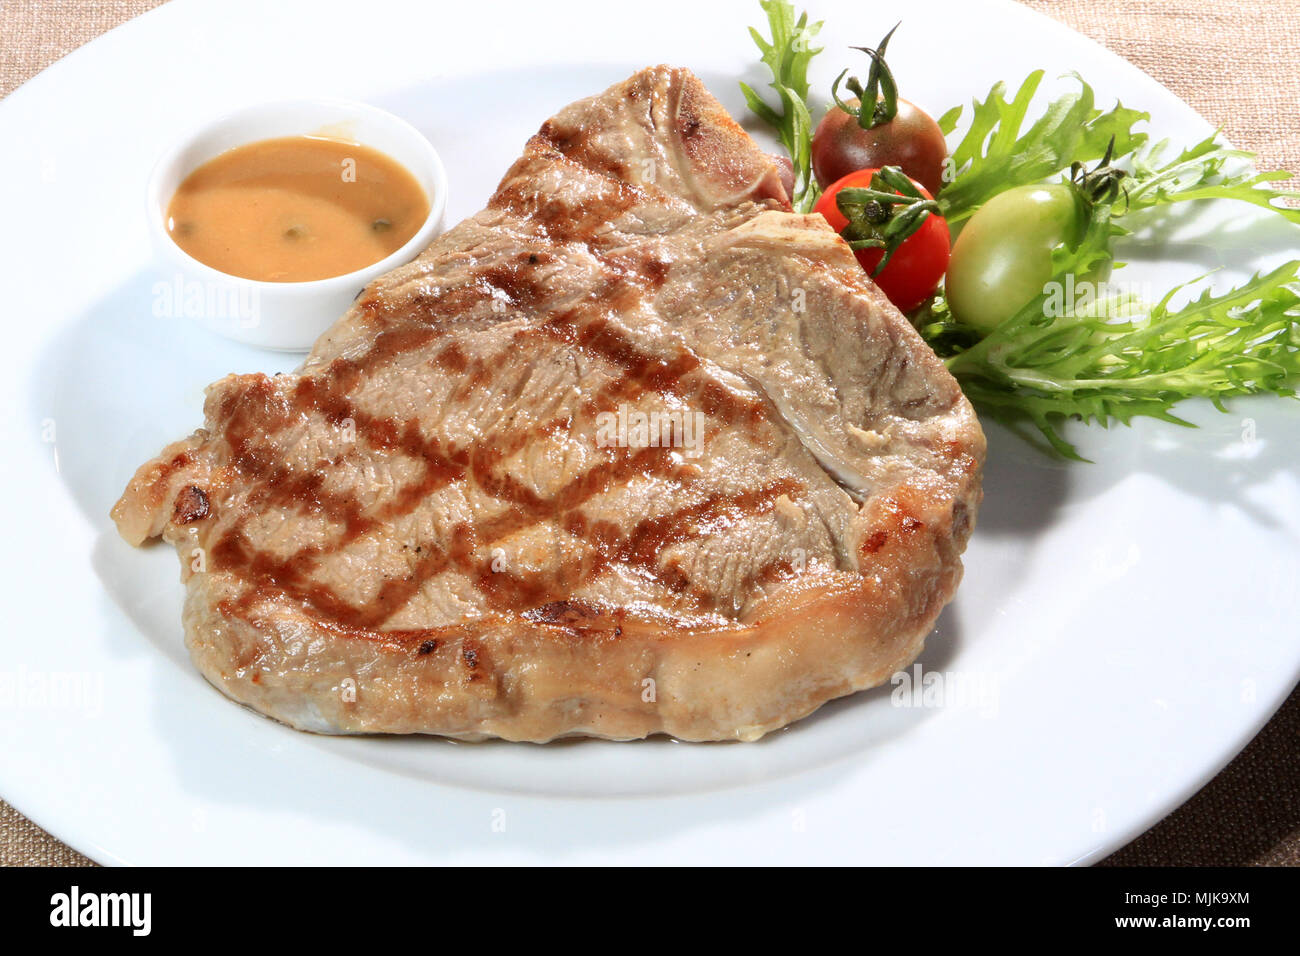 delicious grilled steak with sauce Stock Photo